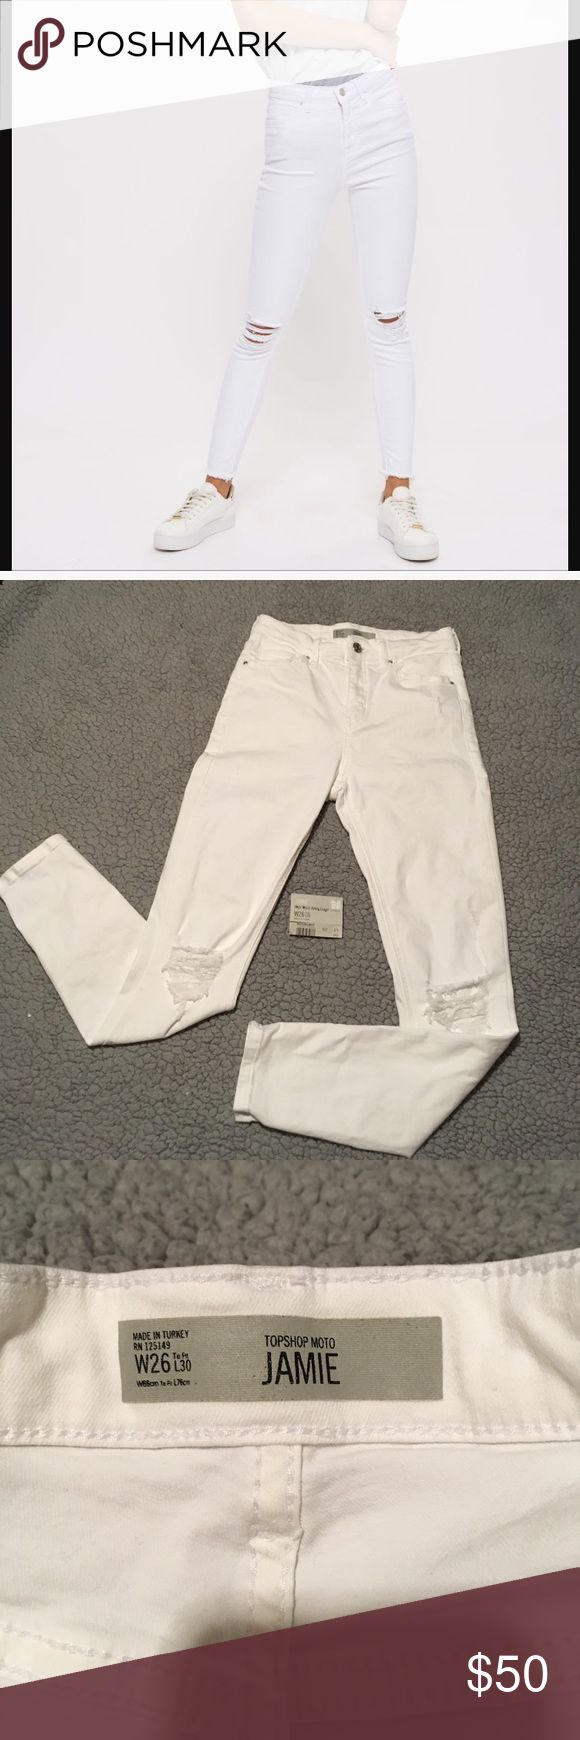 """TopShop Moto Jamie White High Rise Jeans Size 26 Perfect NWT Detached jeans. Jamie High Rise Moto Ripped Jeans. Size 26 or women's 2. Bright white. Great rips in great places! Waist is 12"""" across, inseam is an ankle grazing 26"""". Very high rise of 10"""". Crafted from a super-stretchy white cotton blend for our signature soft denim feel, the iconic style includes multiple pockets, a top button fly and ripped knees for an added edge. 91% Cotton, 6% Polyester, 3% Elastane. Bundle offer and save…"""